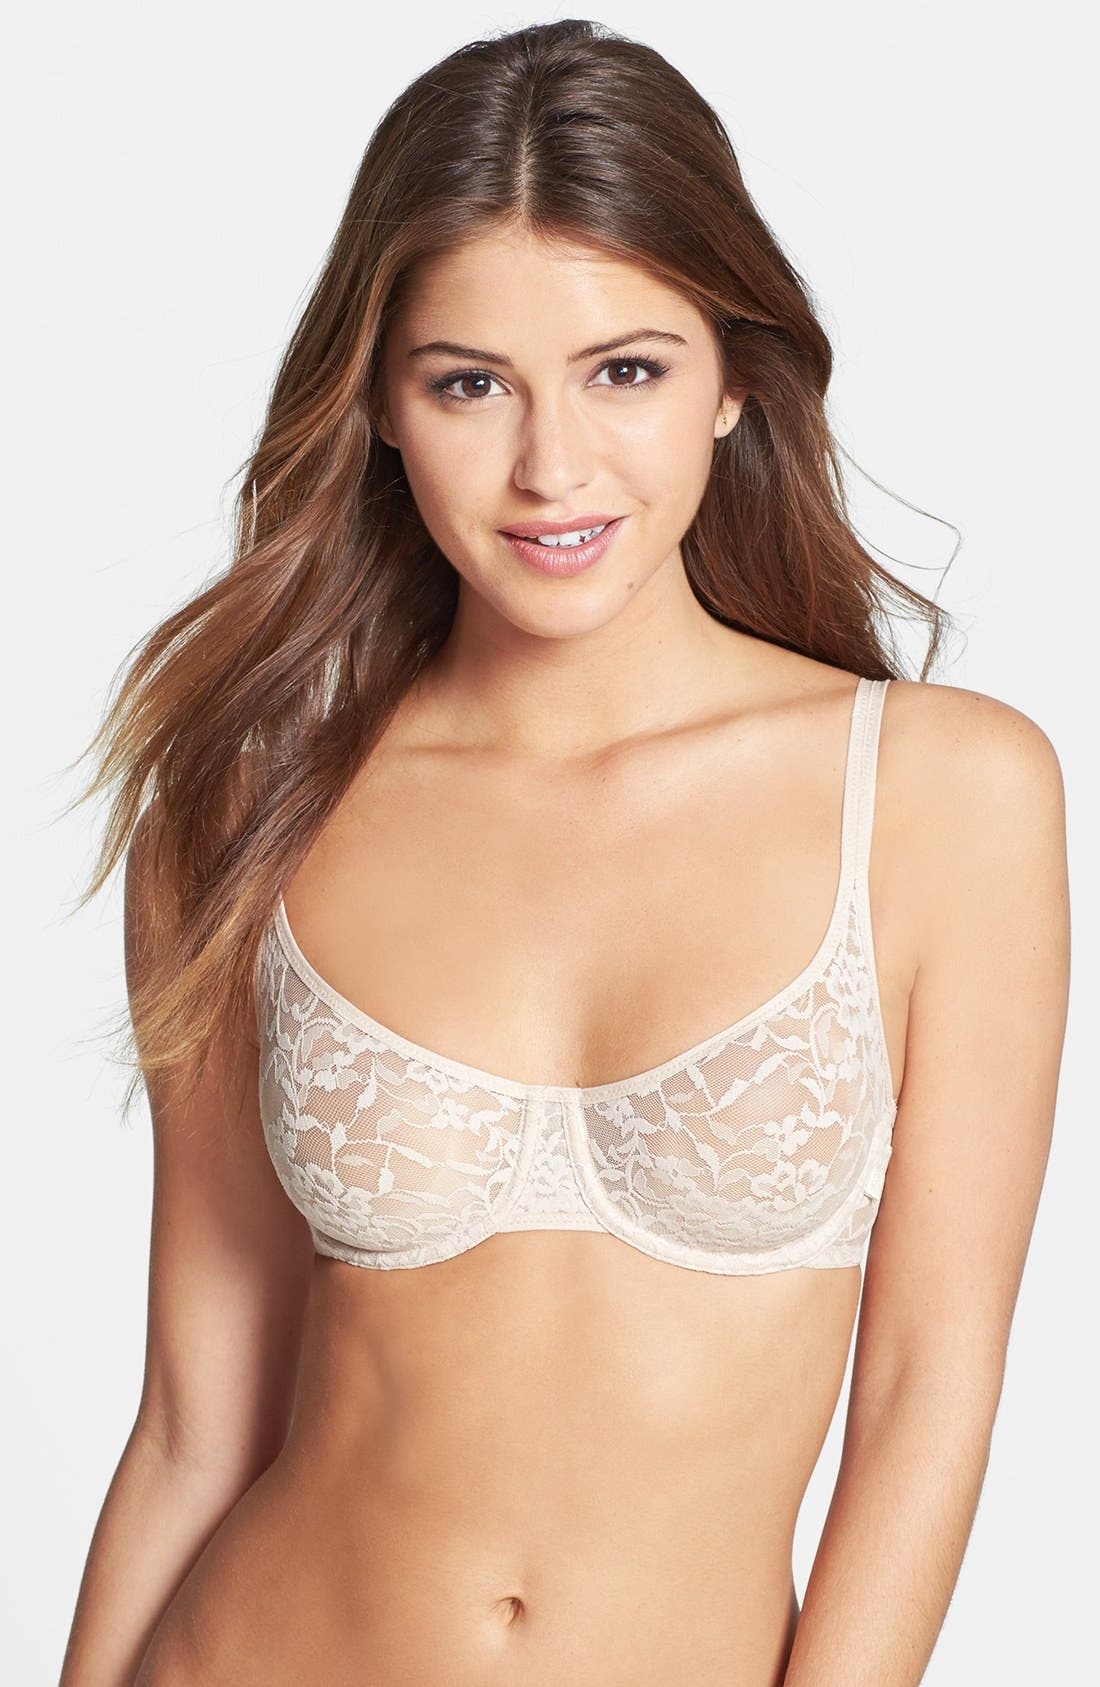 Alternate Image 1 Selected - DKNY 'Signature Lace' Unlined Underwire Demi Bra